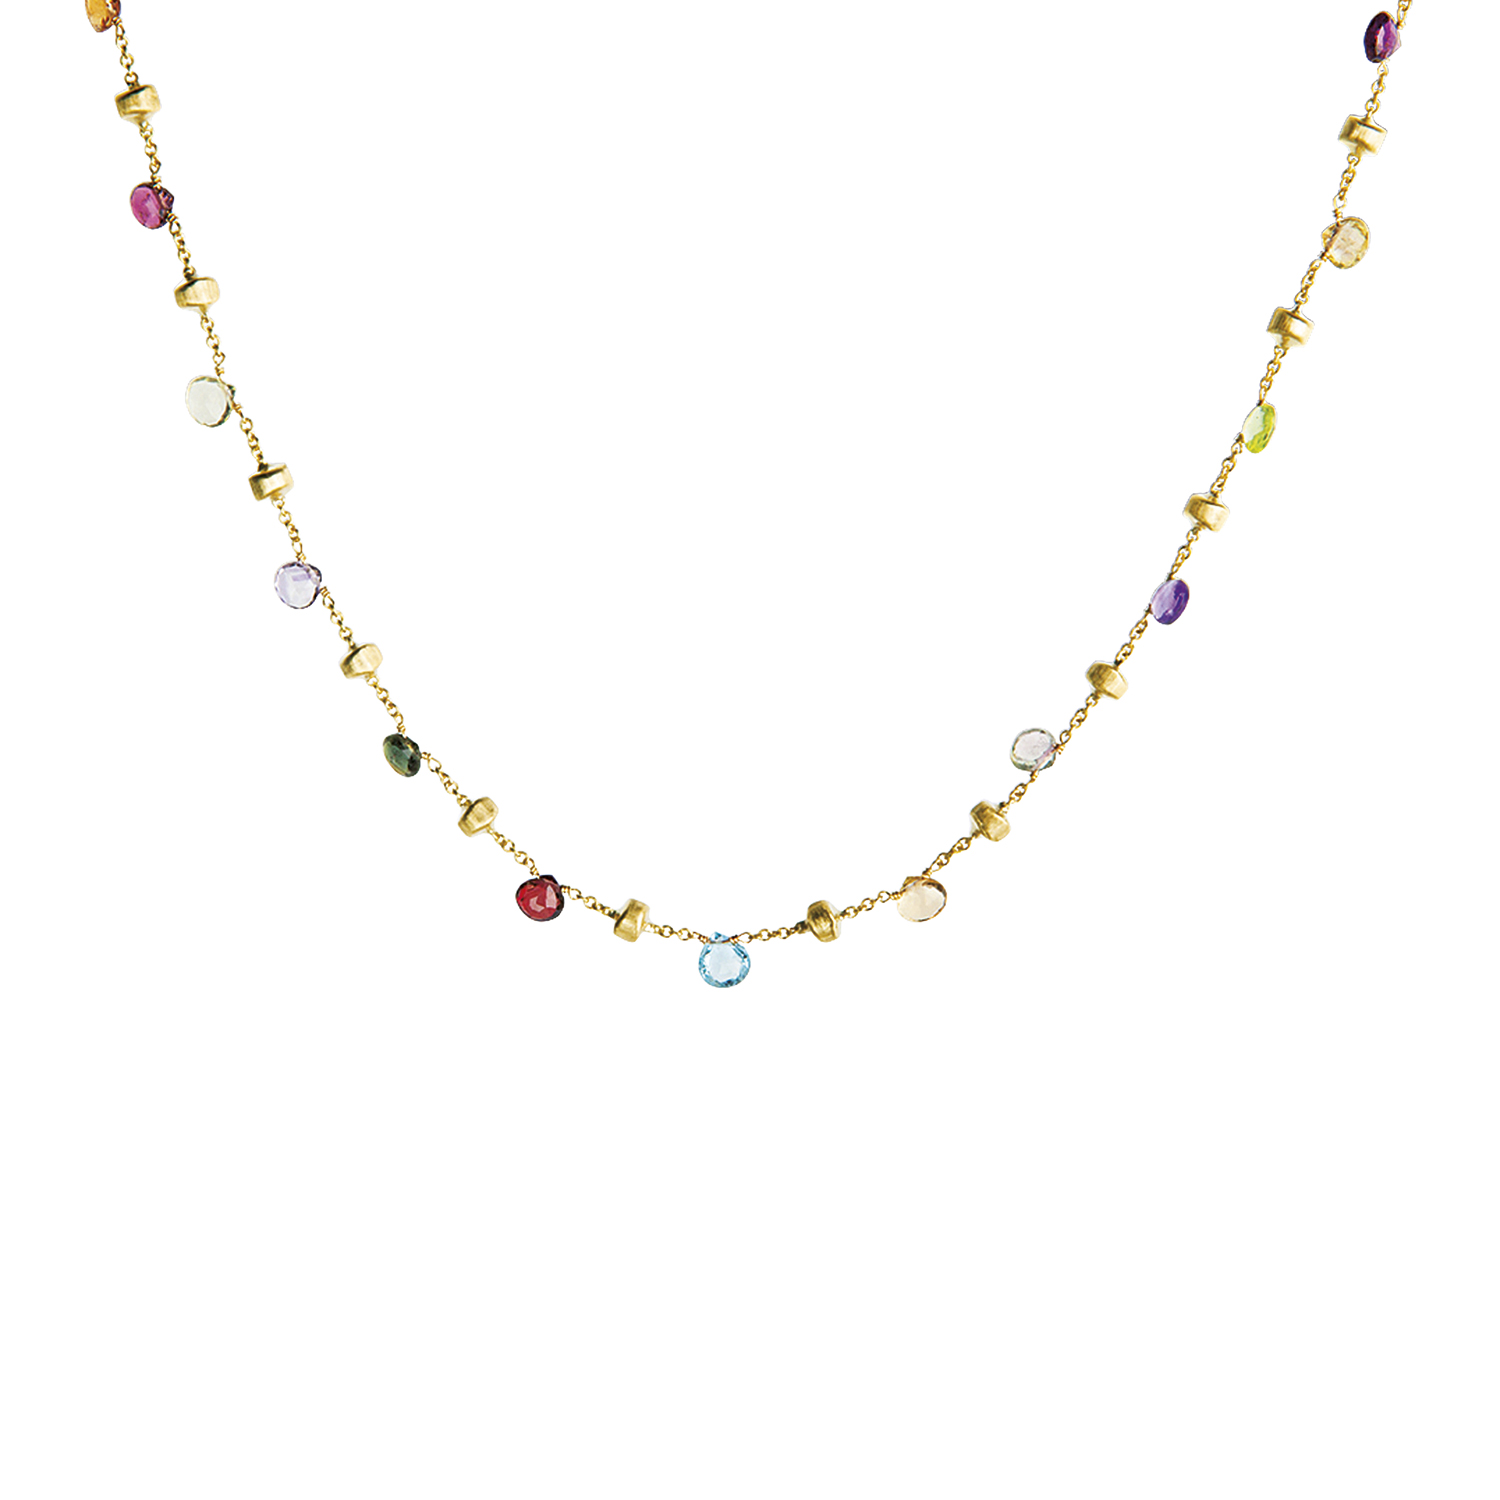 Marco Bicego Kette Paradise 18ct.Gelbgold CB765- MIX01